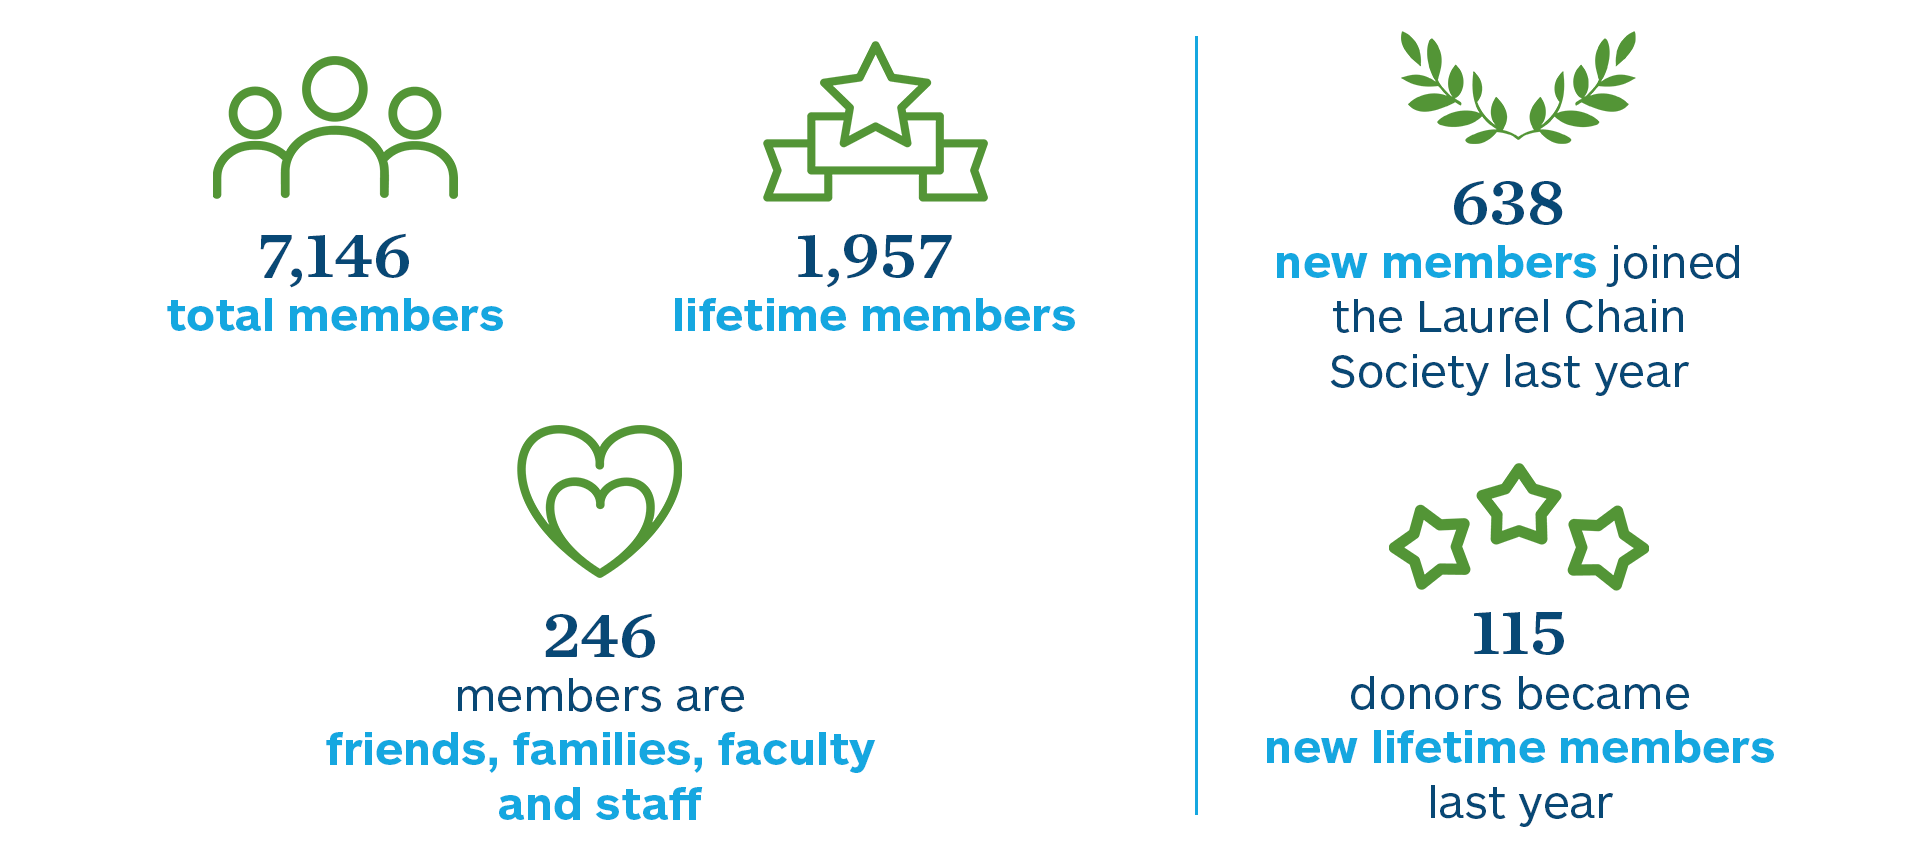 7,146 total members   1,957 lifetime members   246 members are friends, families, faculty and staff   638 new members joined the Laurel Chain Society last year   115 donors became new lifetime members last year